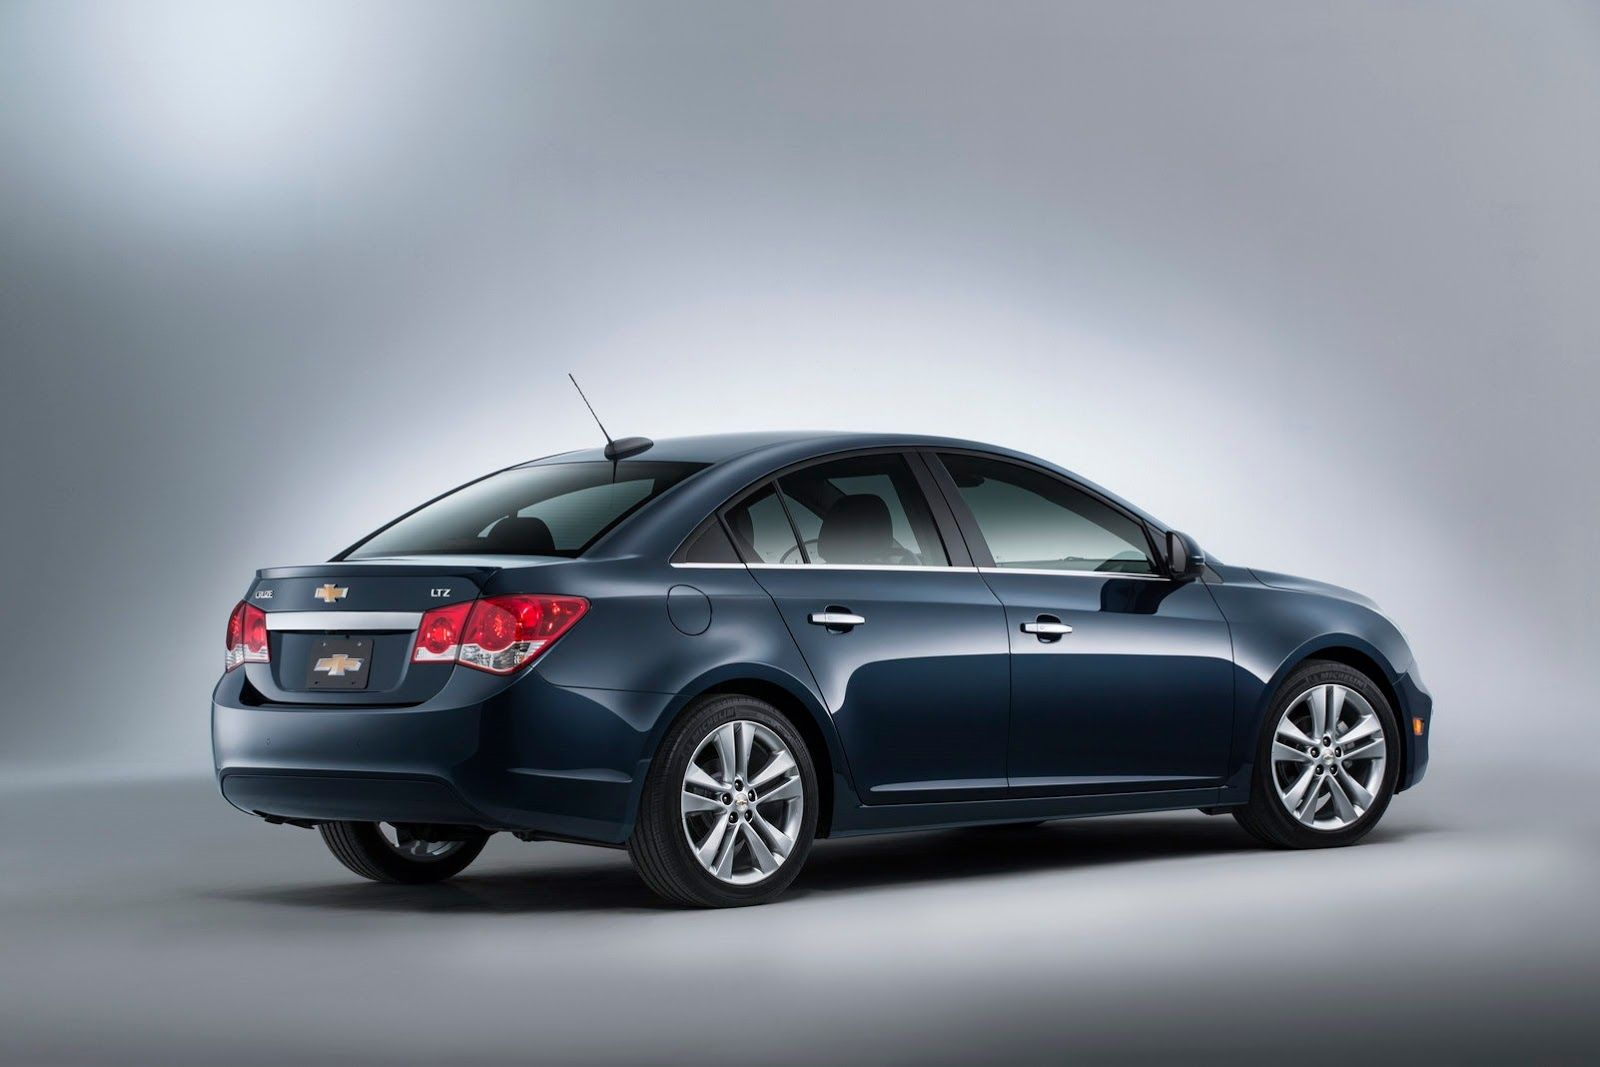 2015 chevrolet cruze cool wallpapers http carwallspaper com 2015